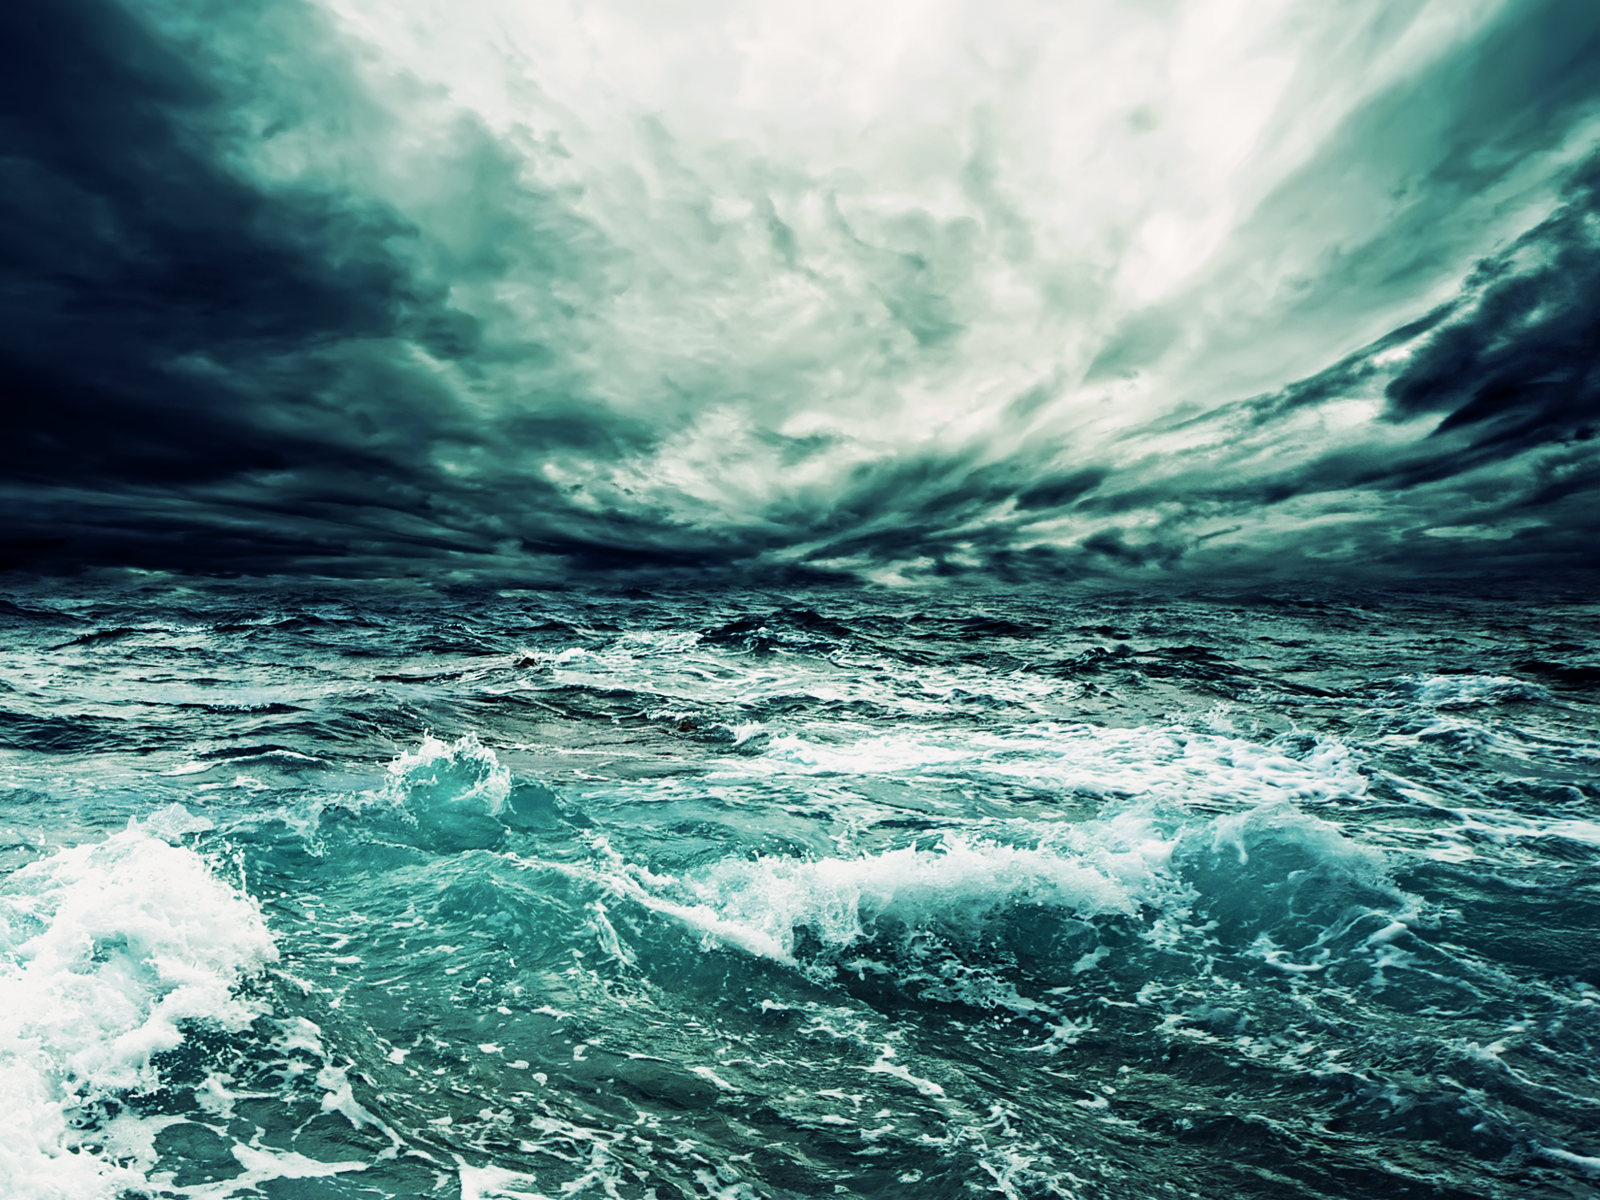 Free Sea Storm Wallpaper 32294 1600x1200 px